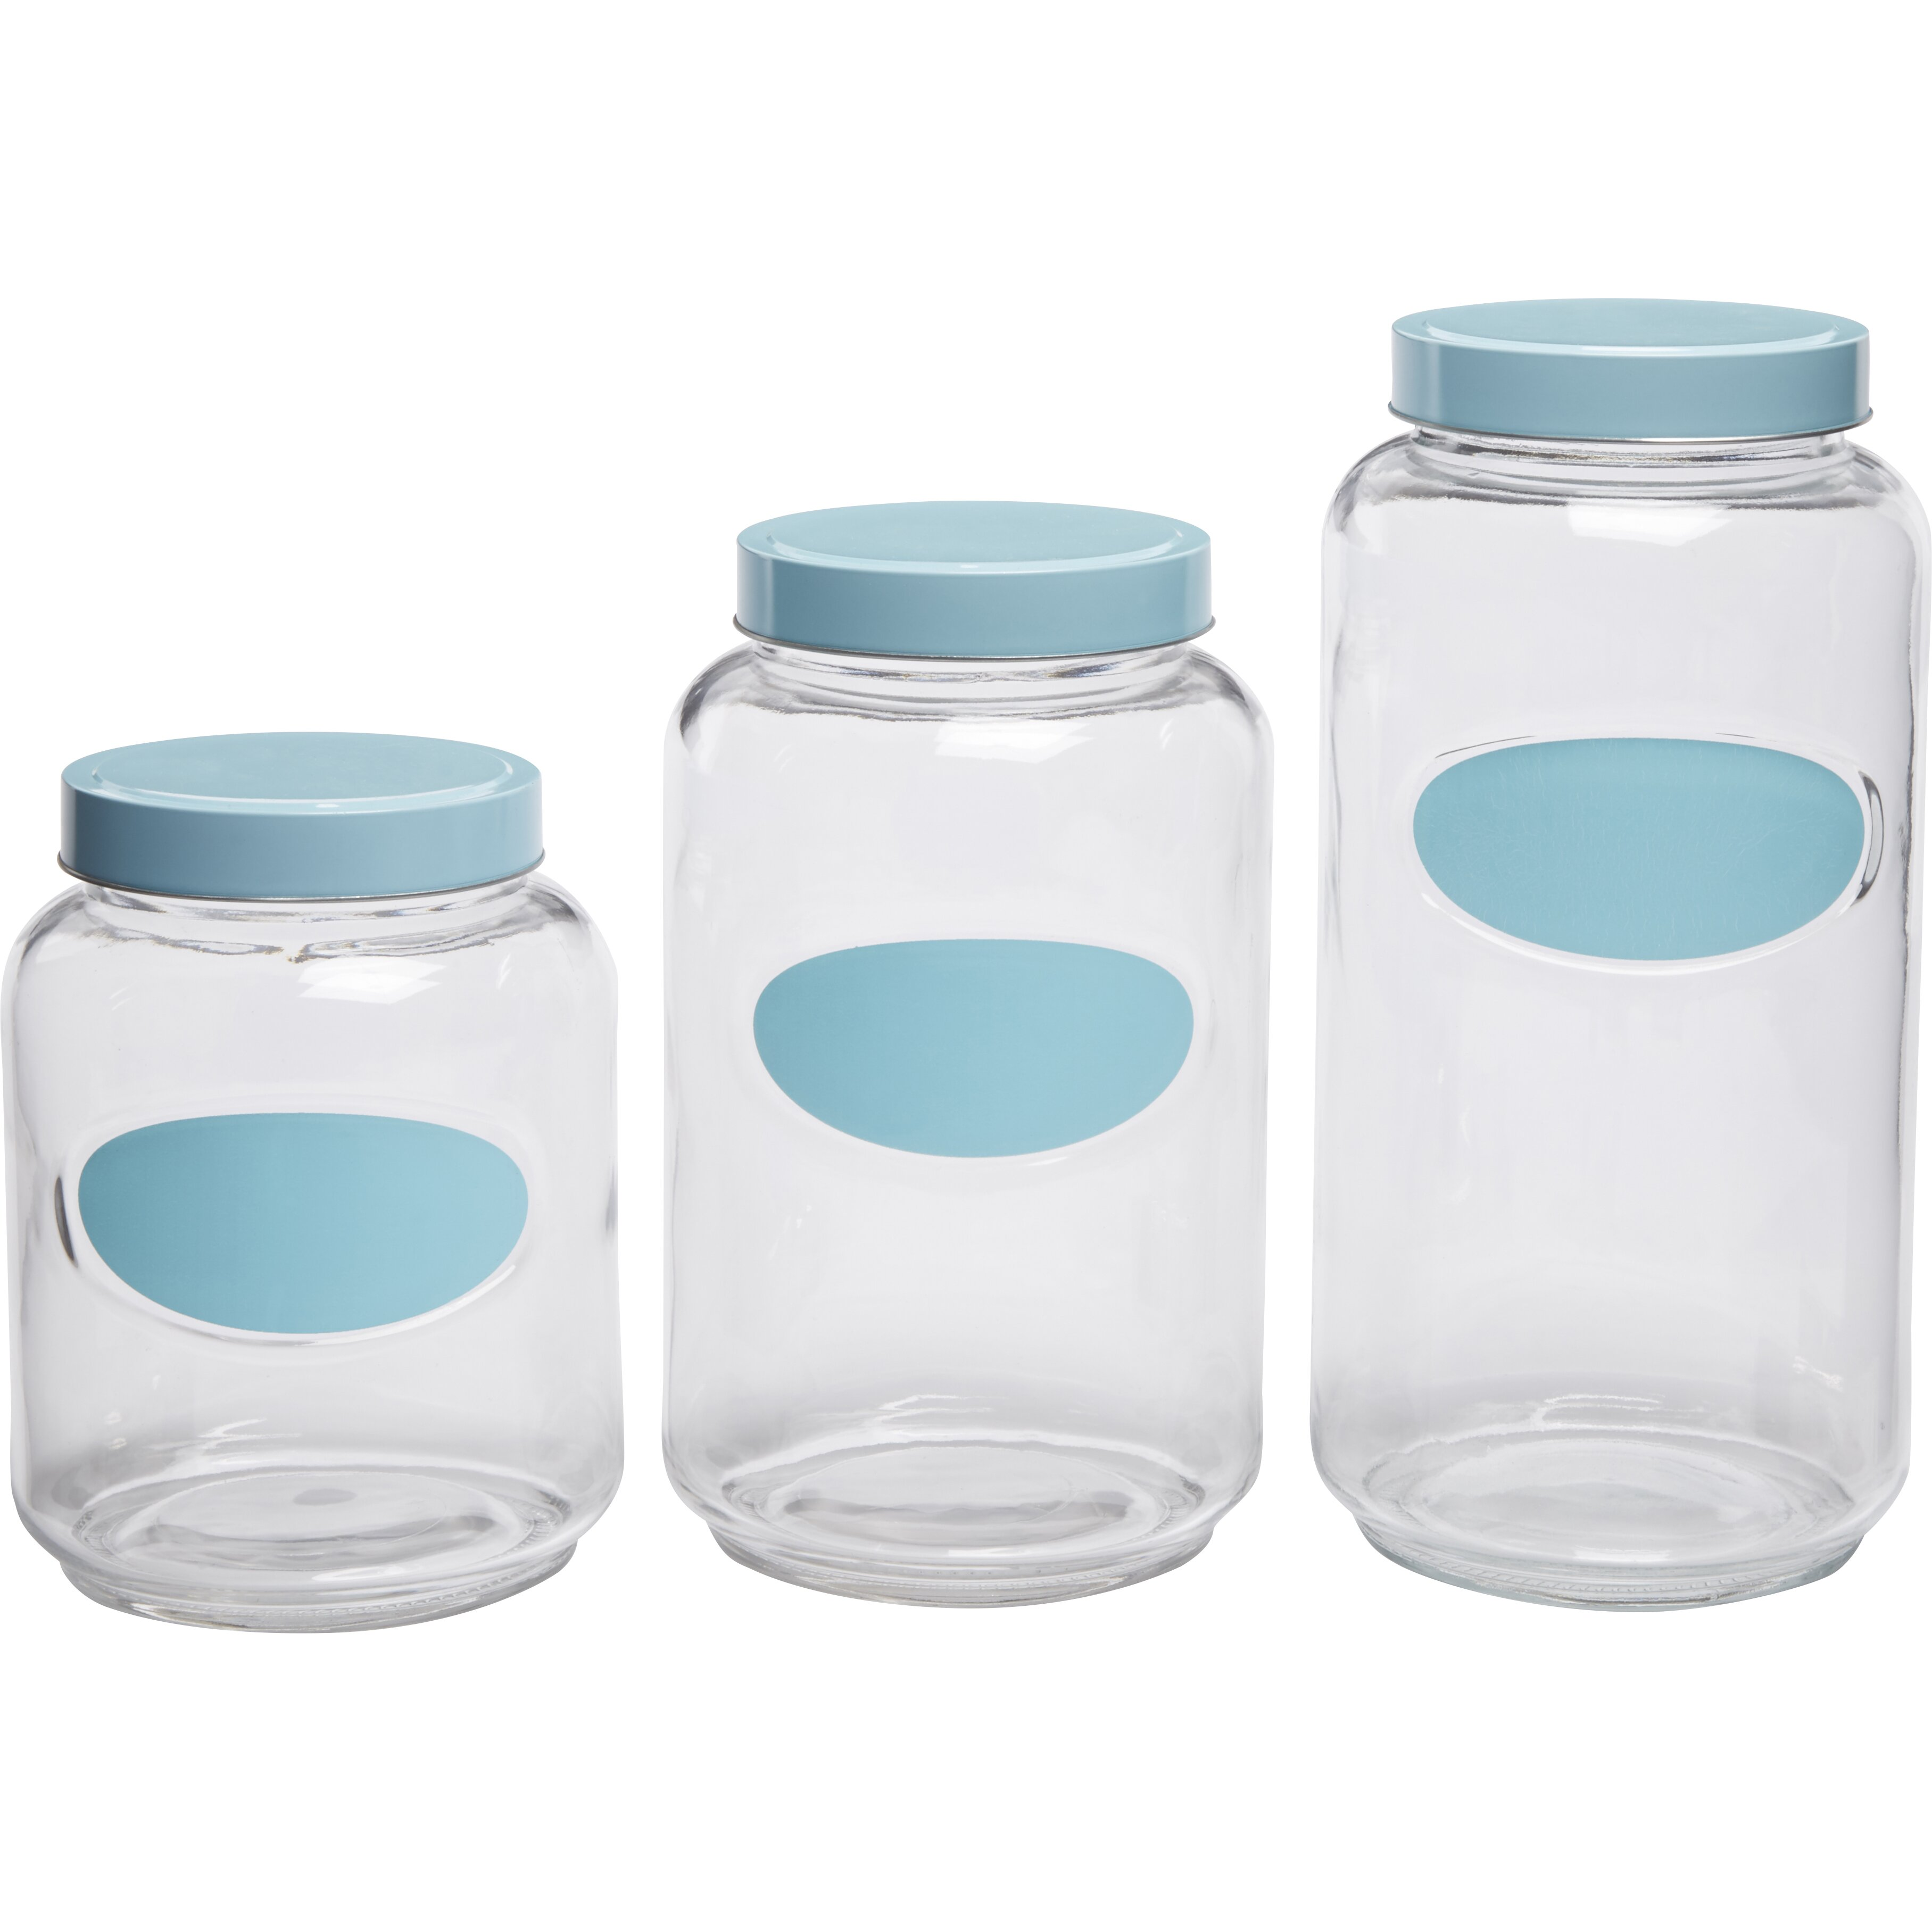 circle glass mark and store chalkboard 3 piece kitchen glass kitchen canister sets foter